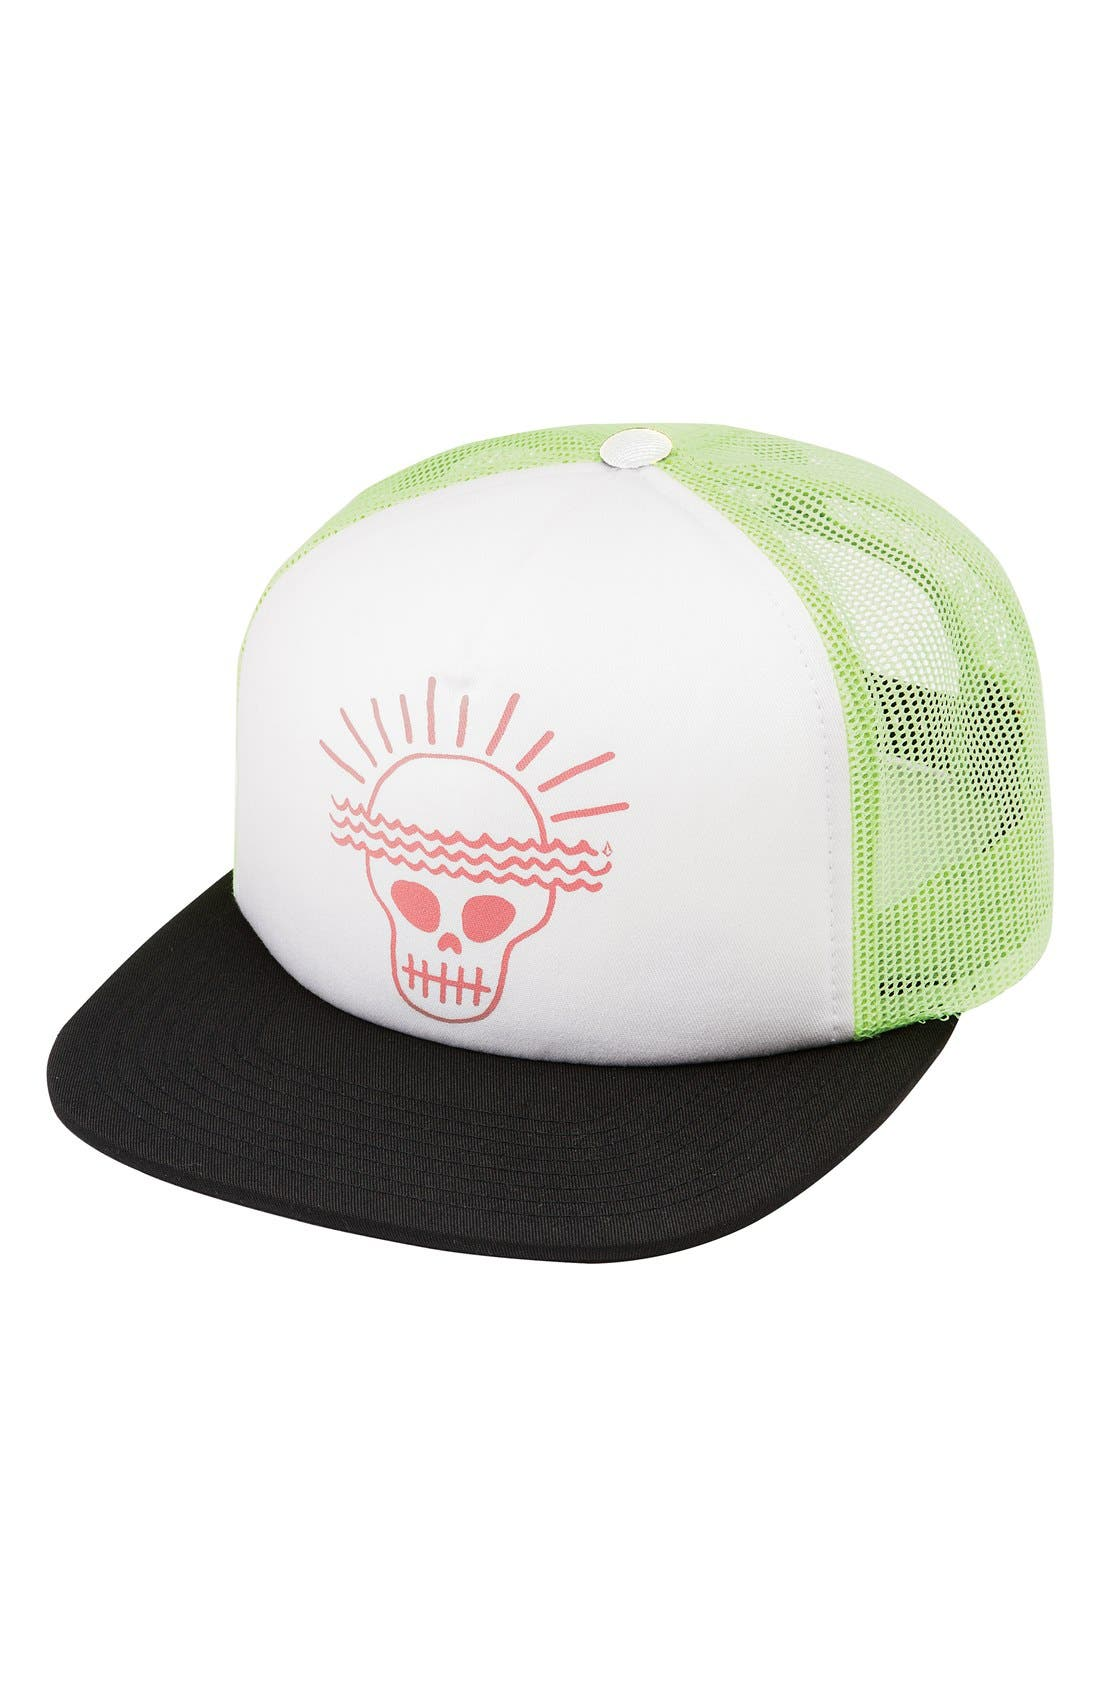 Alternate Image 1 Selected - Volcom 'Statement' Trucker Cap